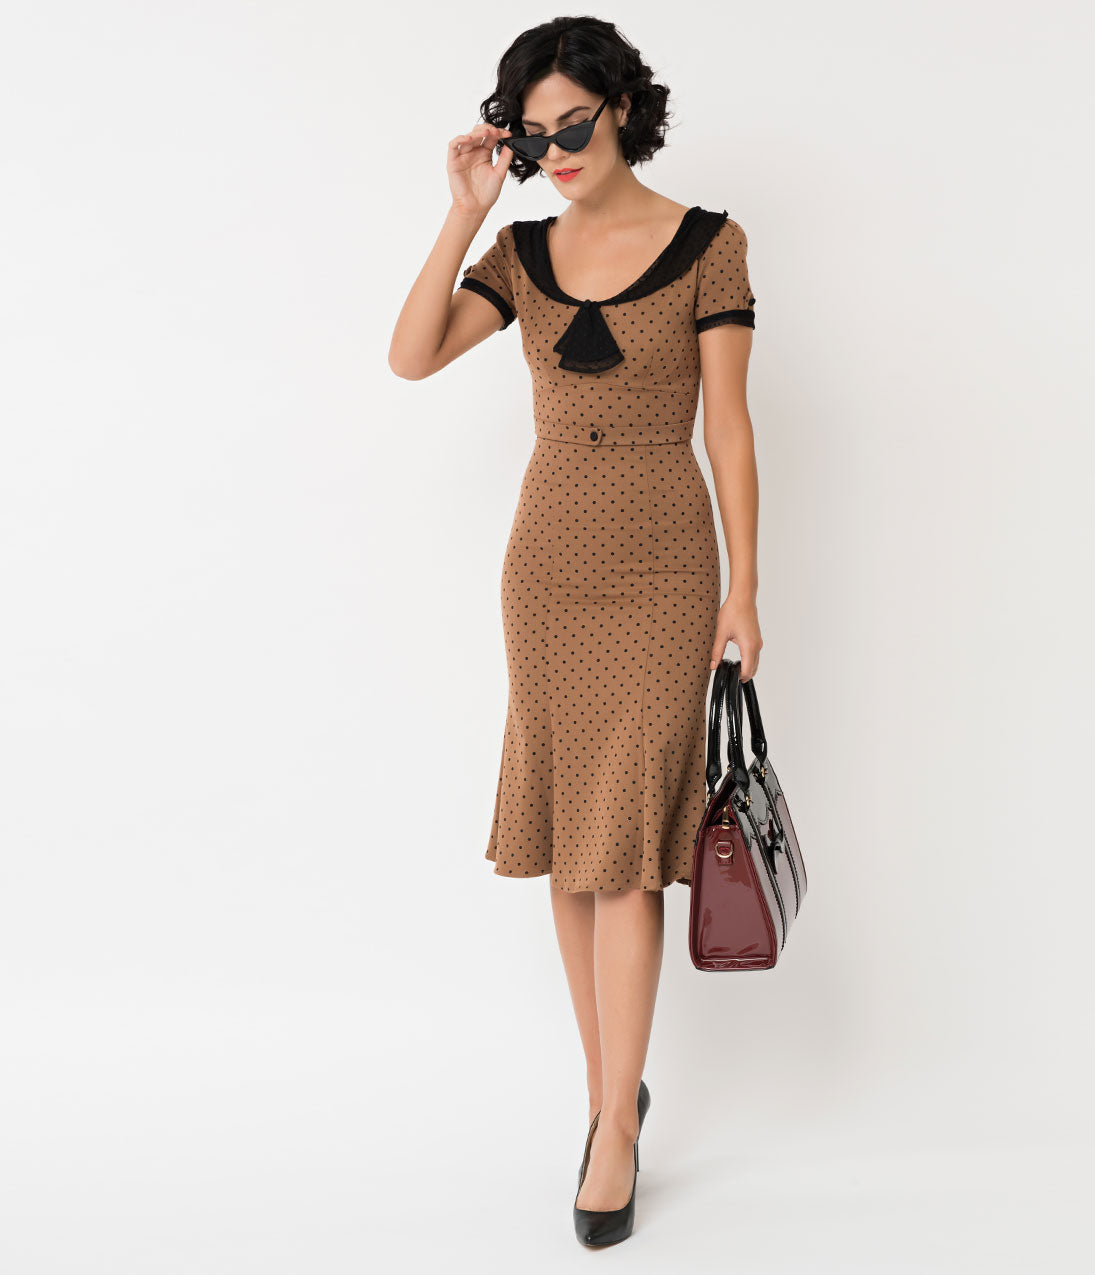 1930s Dresses | 30s Art Deco Dress Stop Staring 1930S Tan  Black Dot Railene Dress $172.00 AT vintagedancer.com